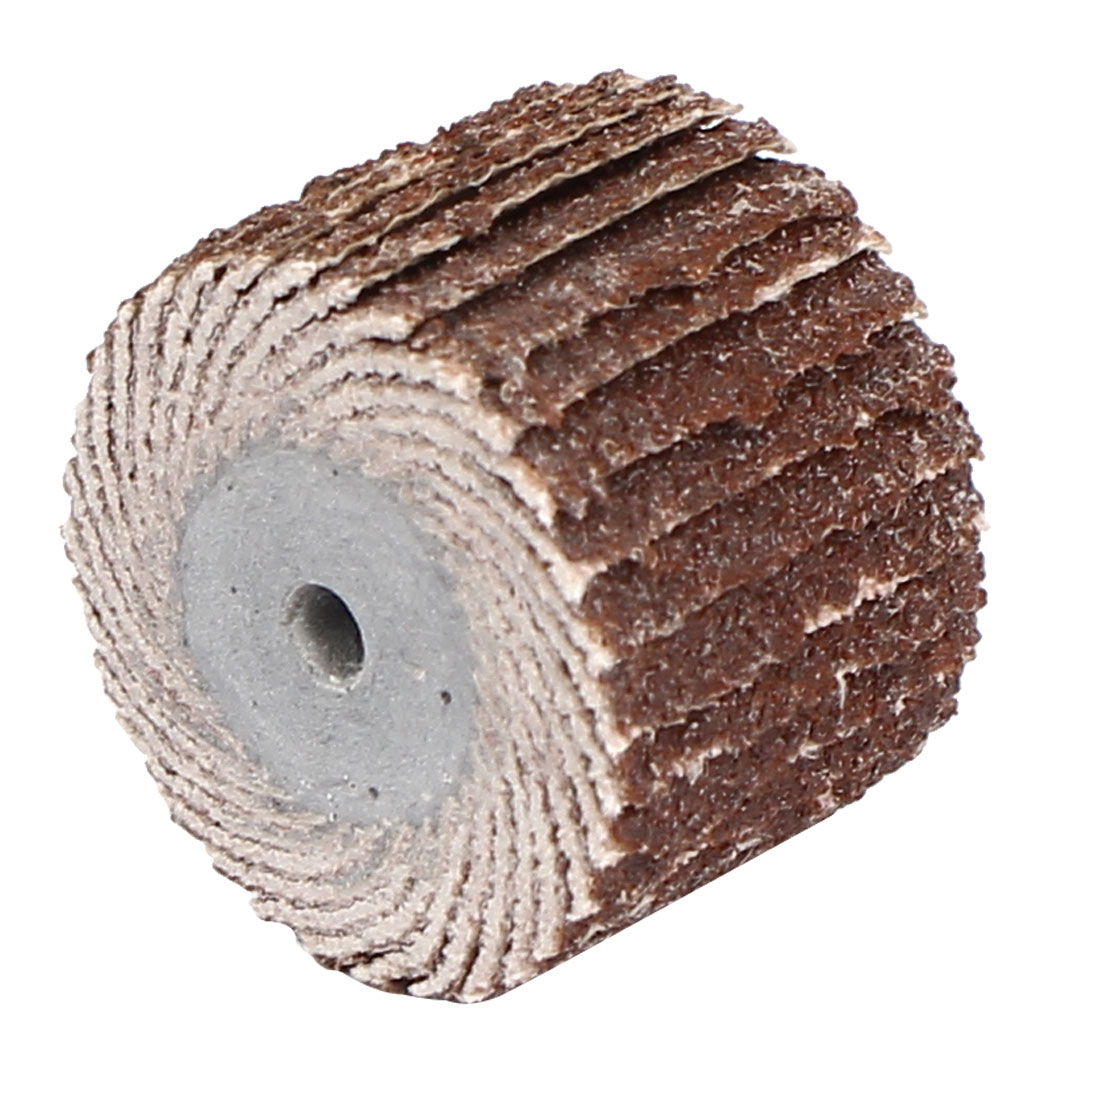 22mm Diameter Sandpaper Grinding Mounted Point Flap Wheel